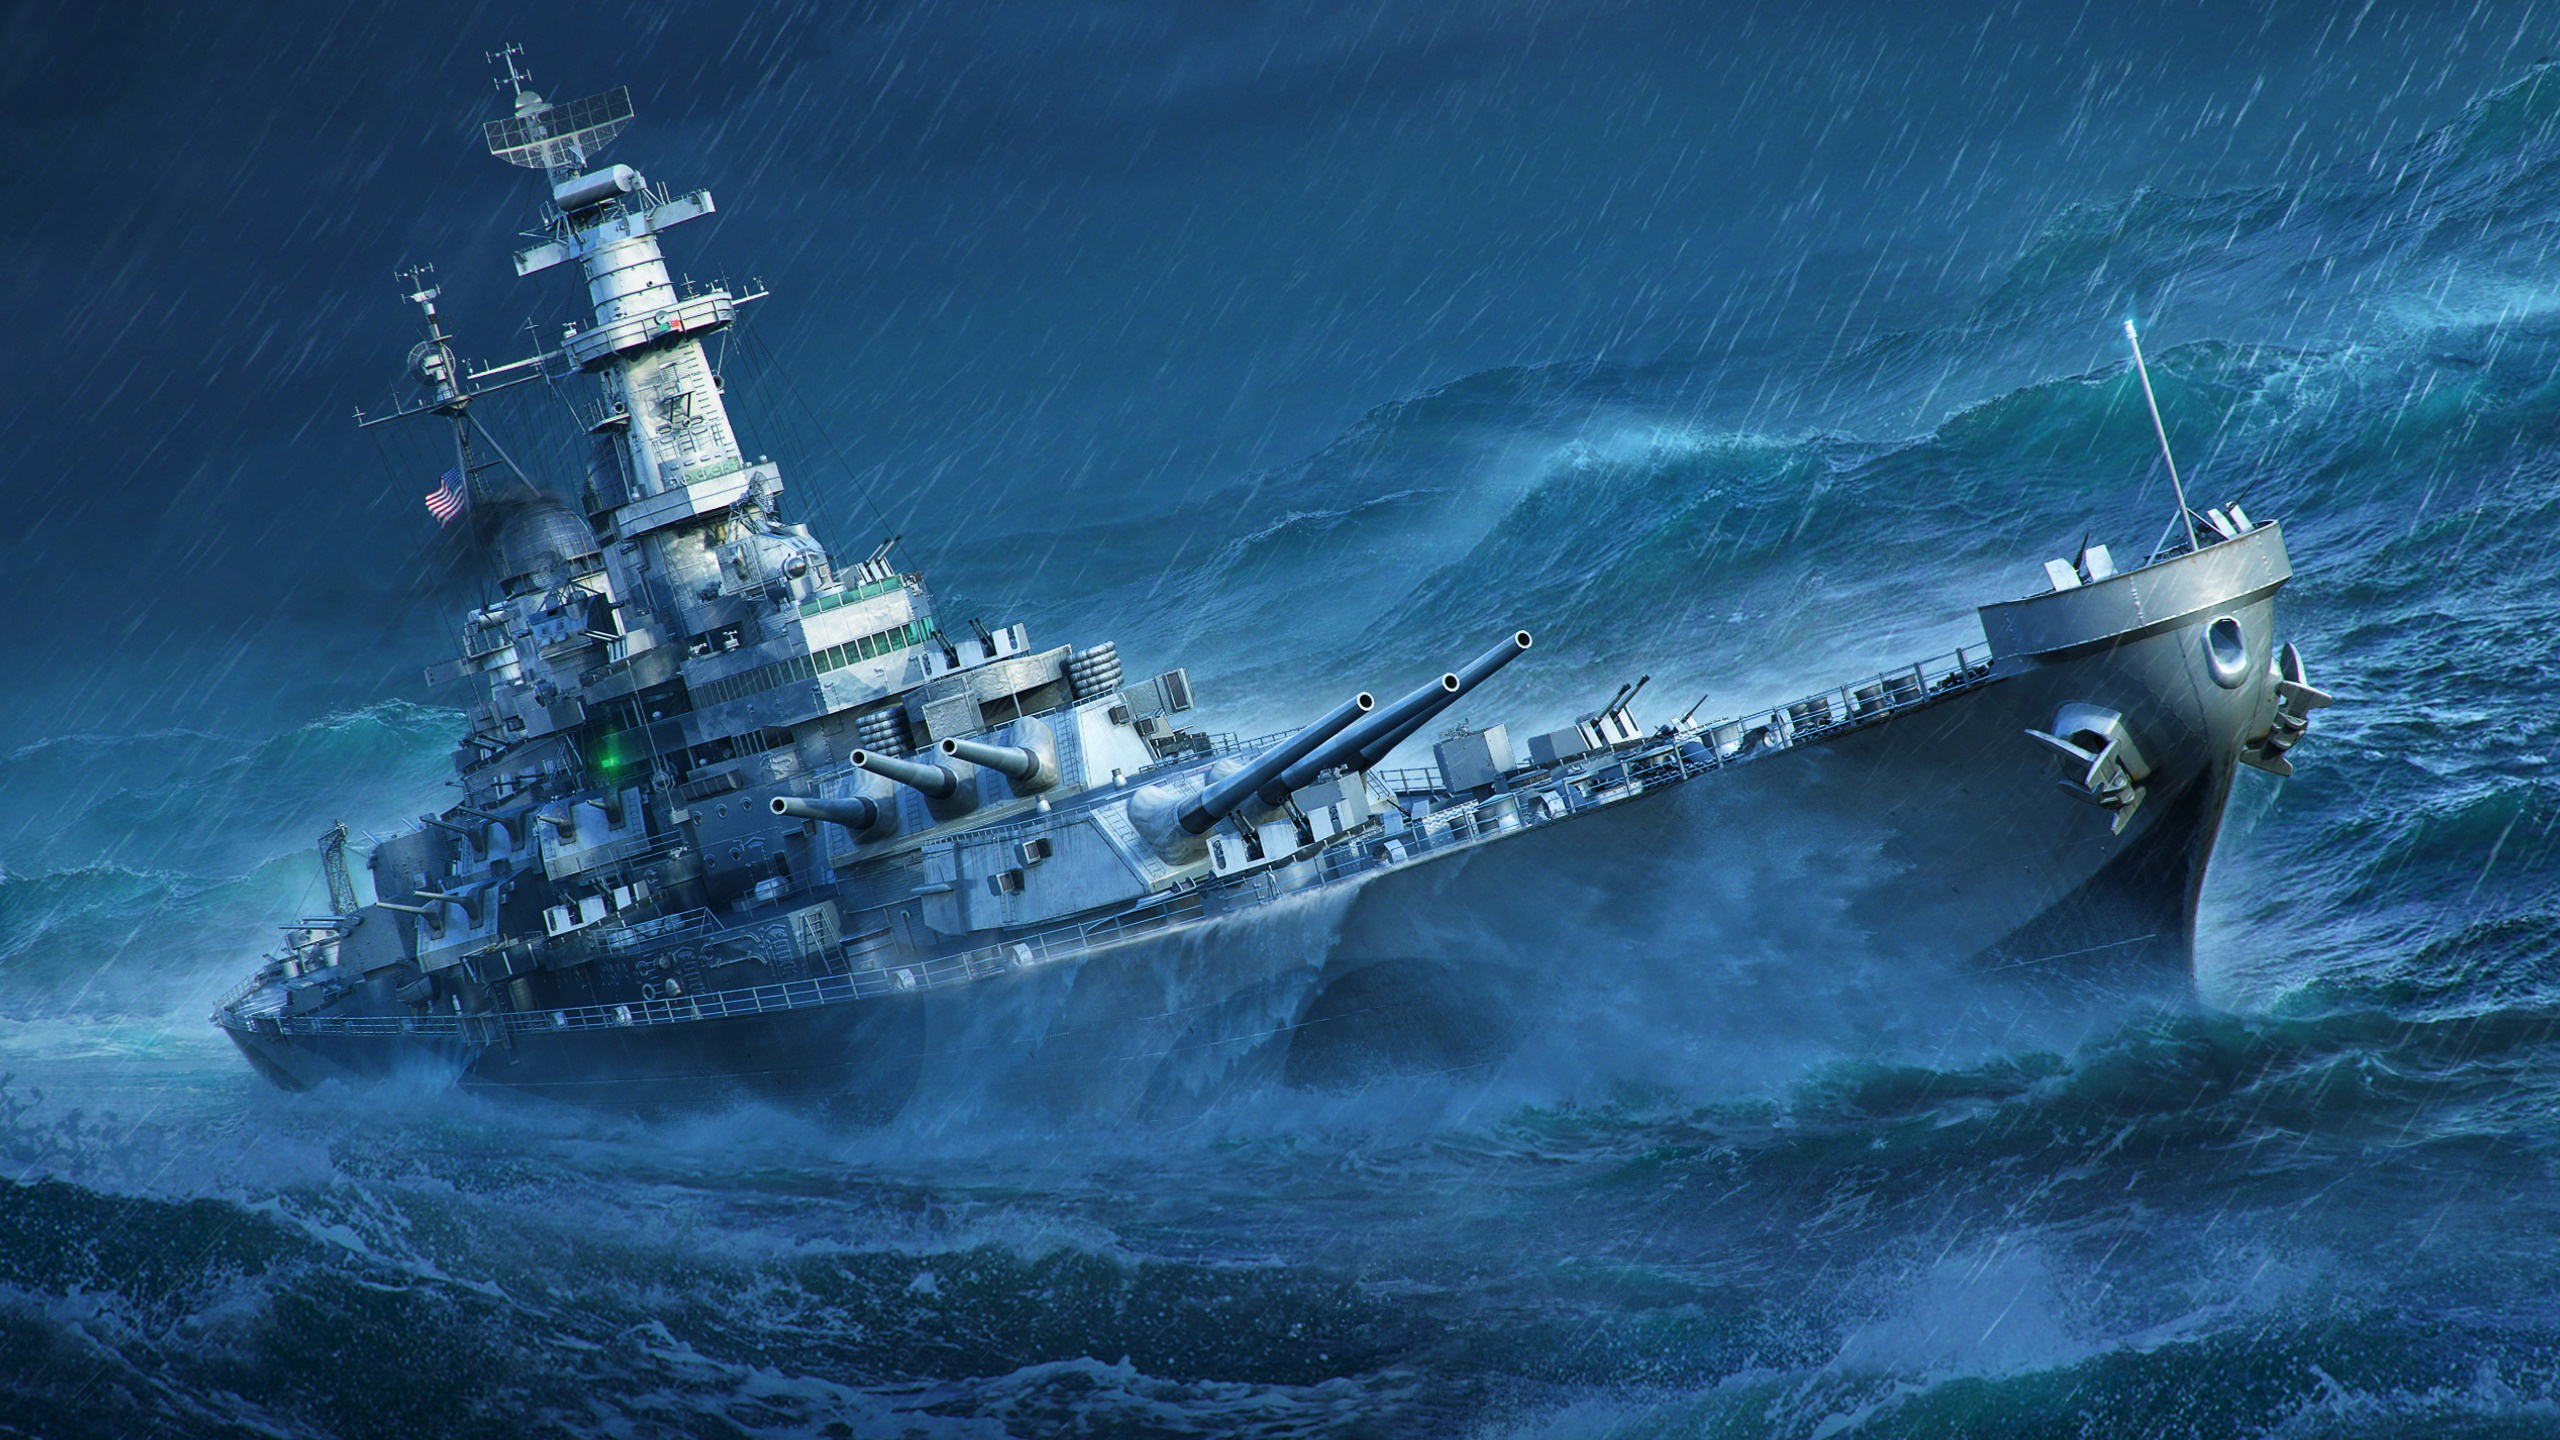 World of Warships HD Wallpaper   Background Image   2560x1440   ID:1012203 - Wallpaper Abyss